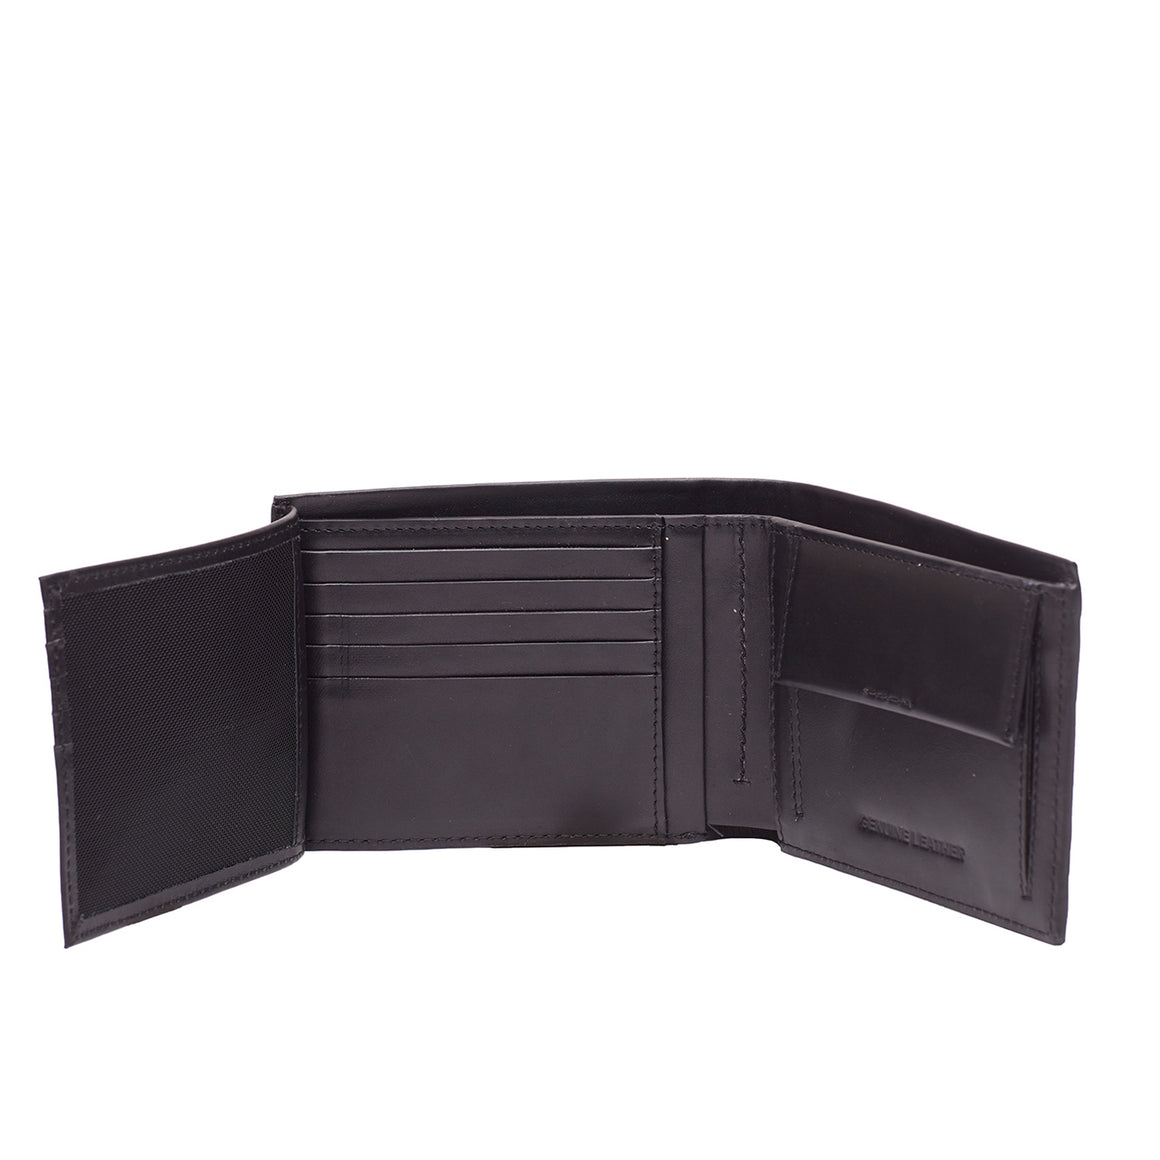 WT 0043 - TOHL ALBERI MEN'S WALLET - CHARCOAL BLACK